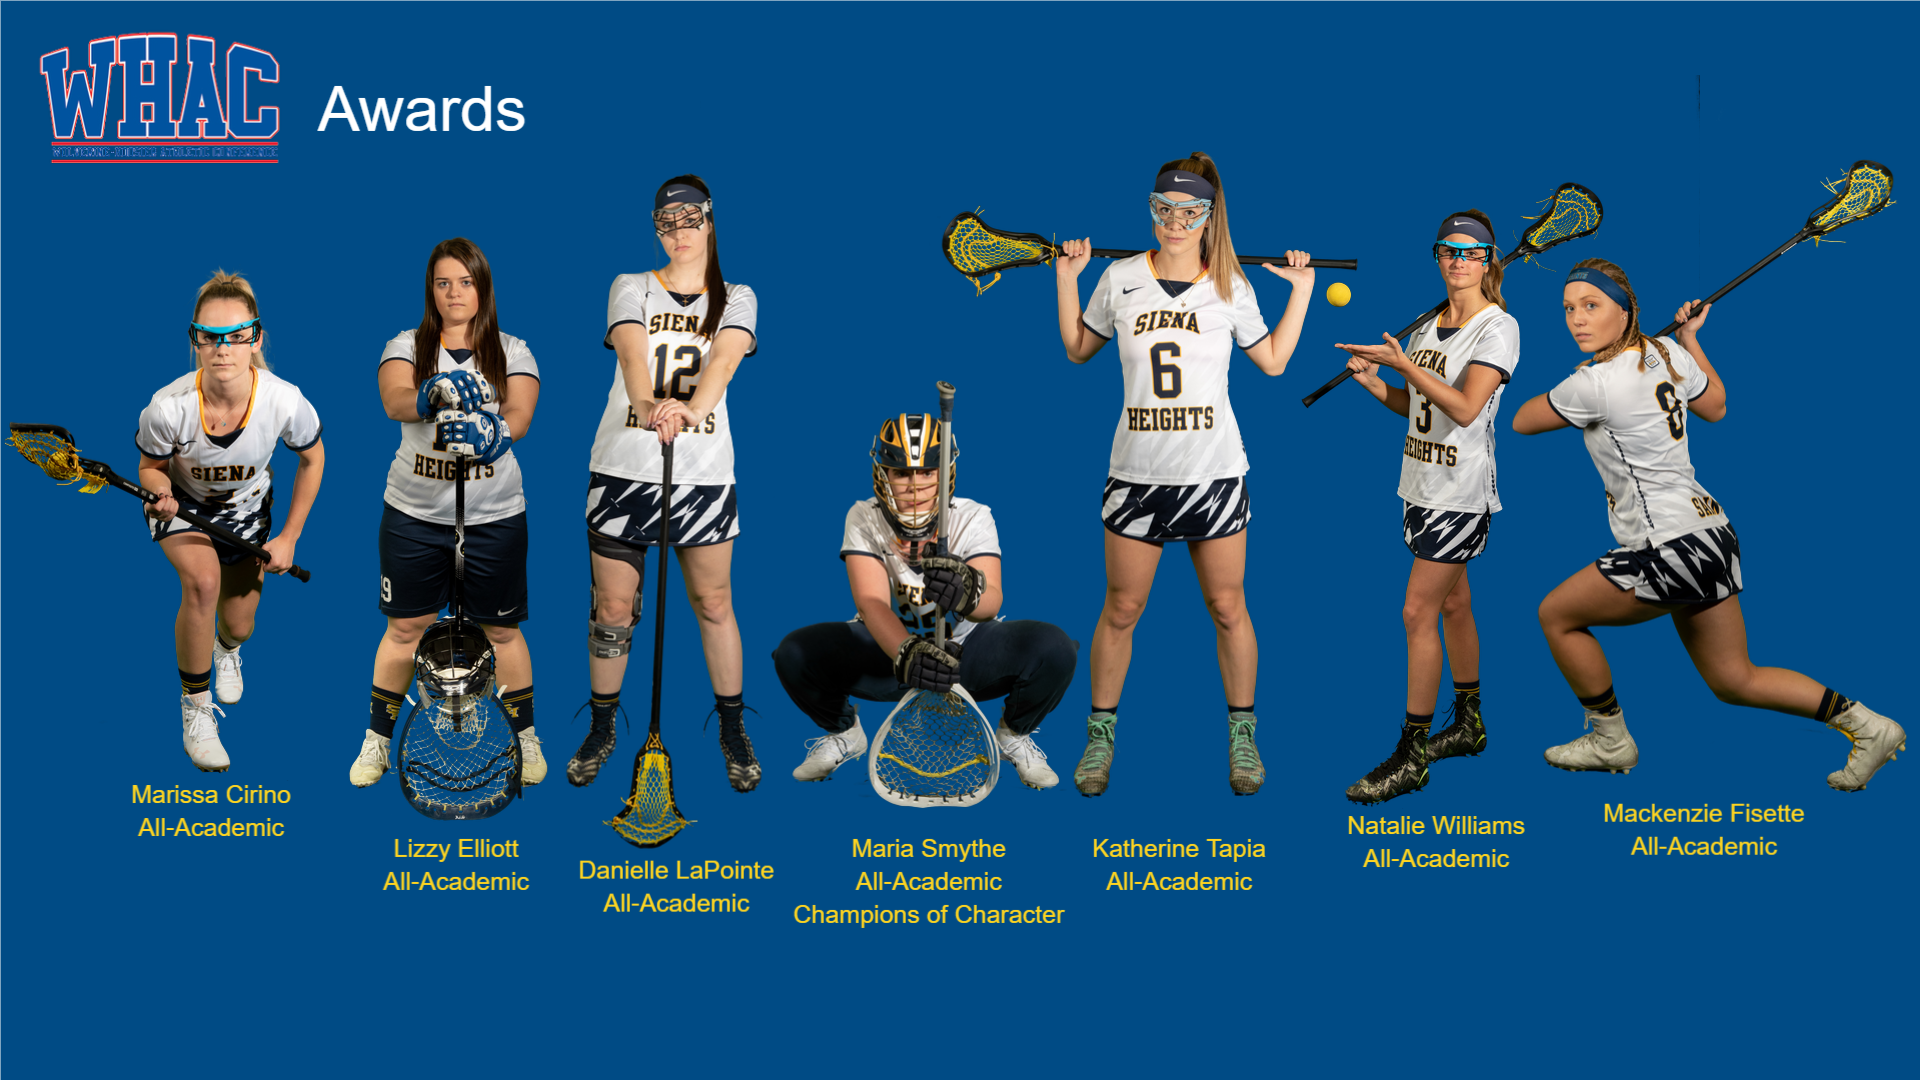 Seven SHU Women's Lacrosse Players Receive WHAC Honors